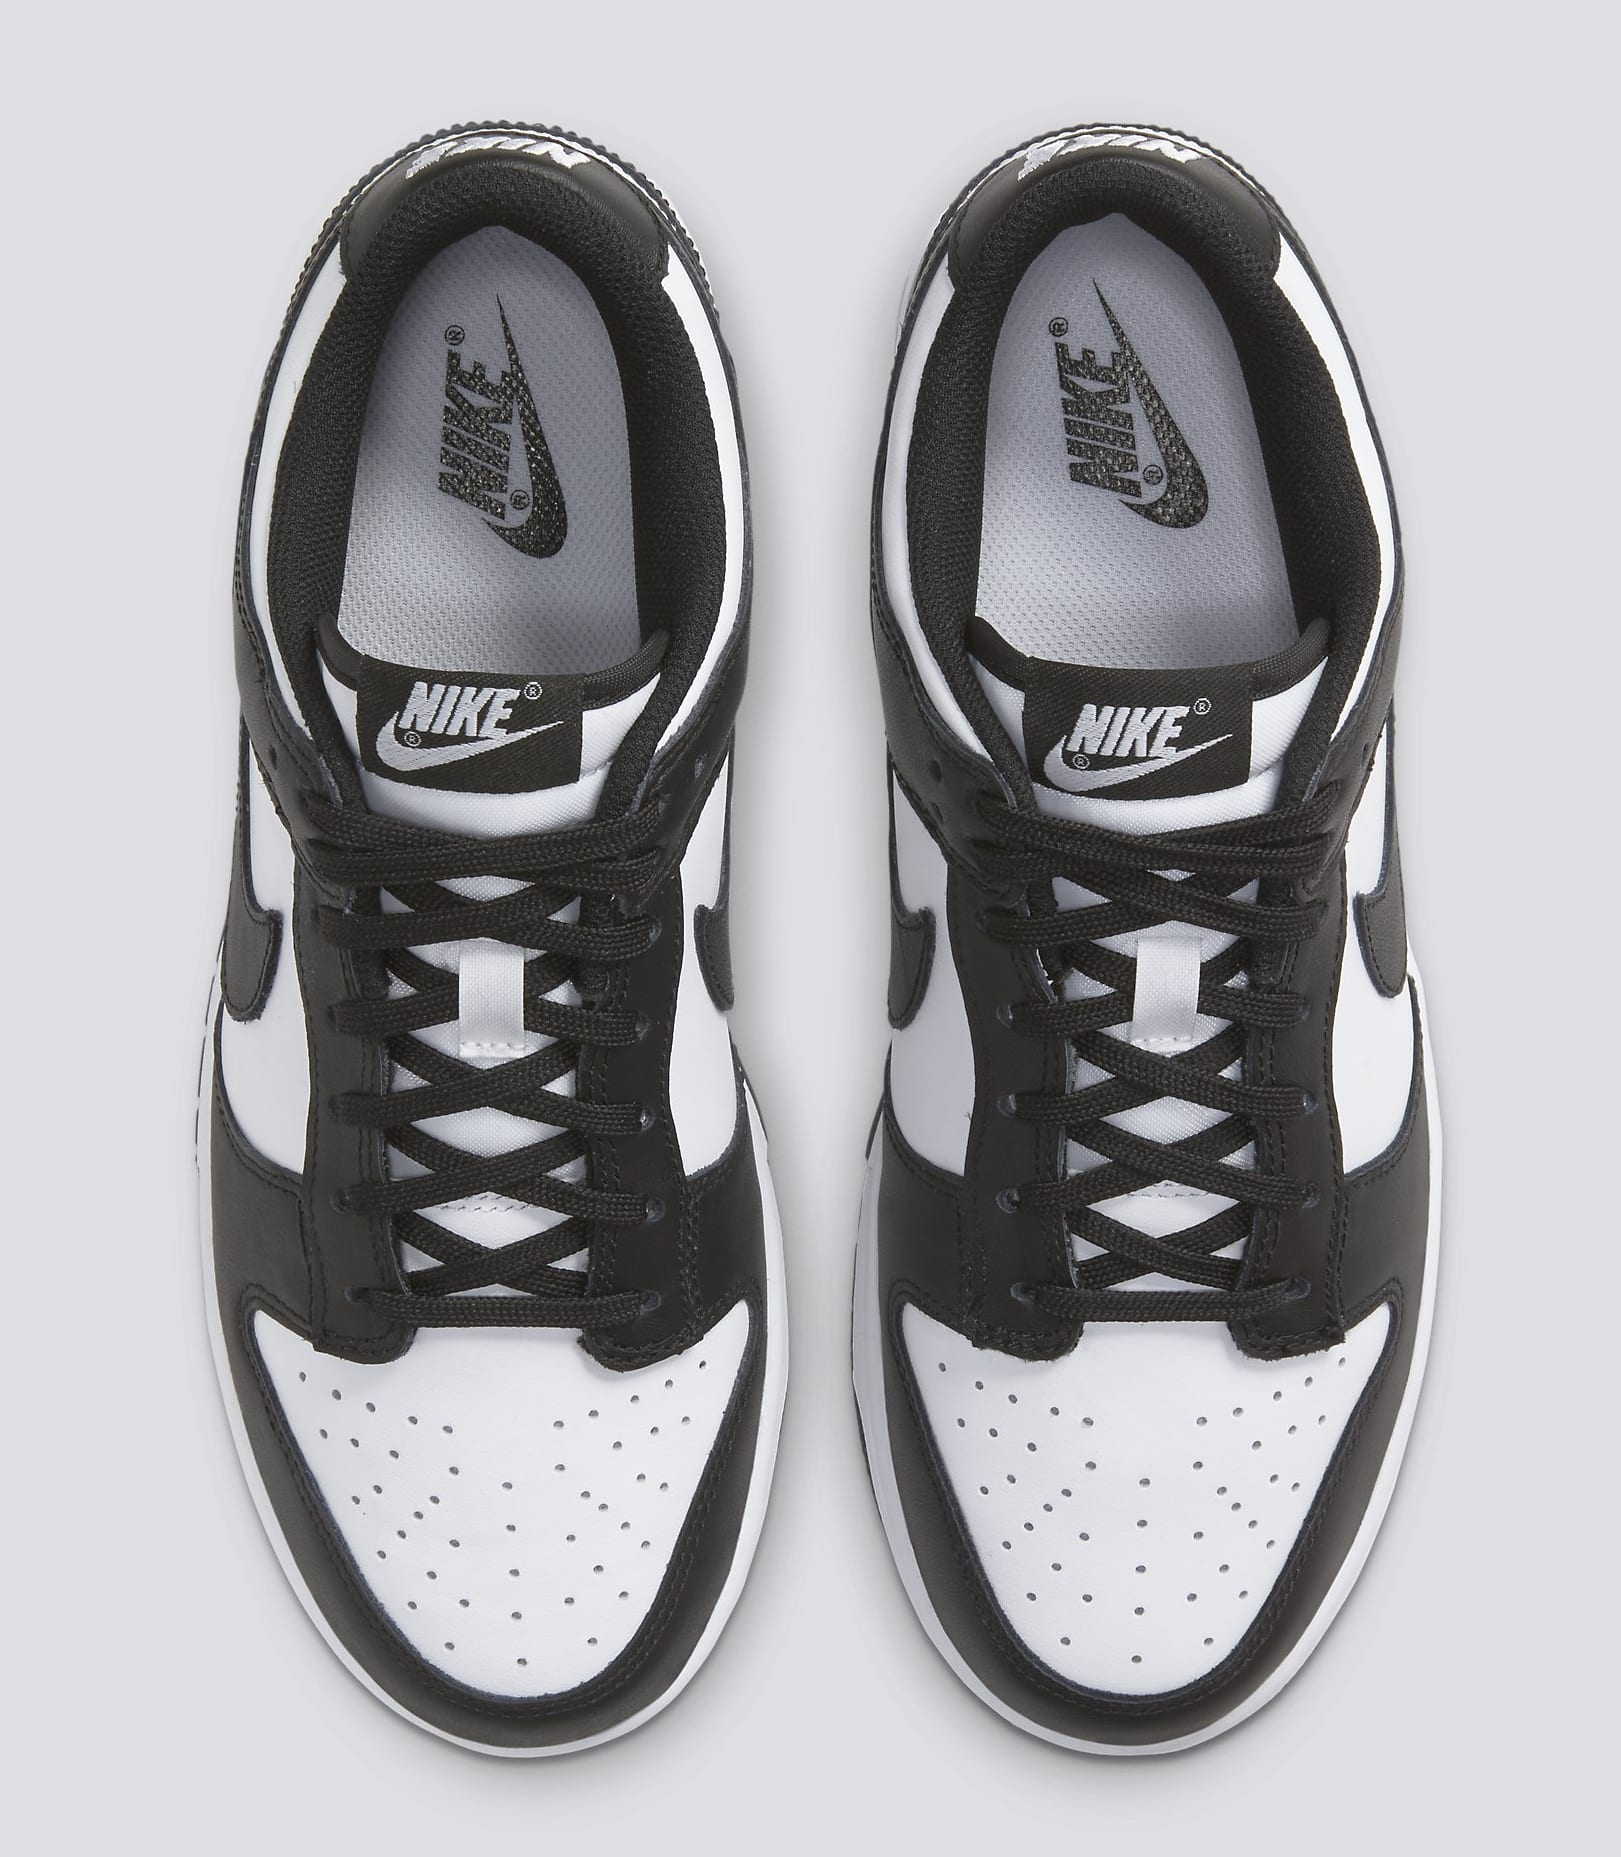 Nike Dunk Low 'Black/White' DD1503-101 Top